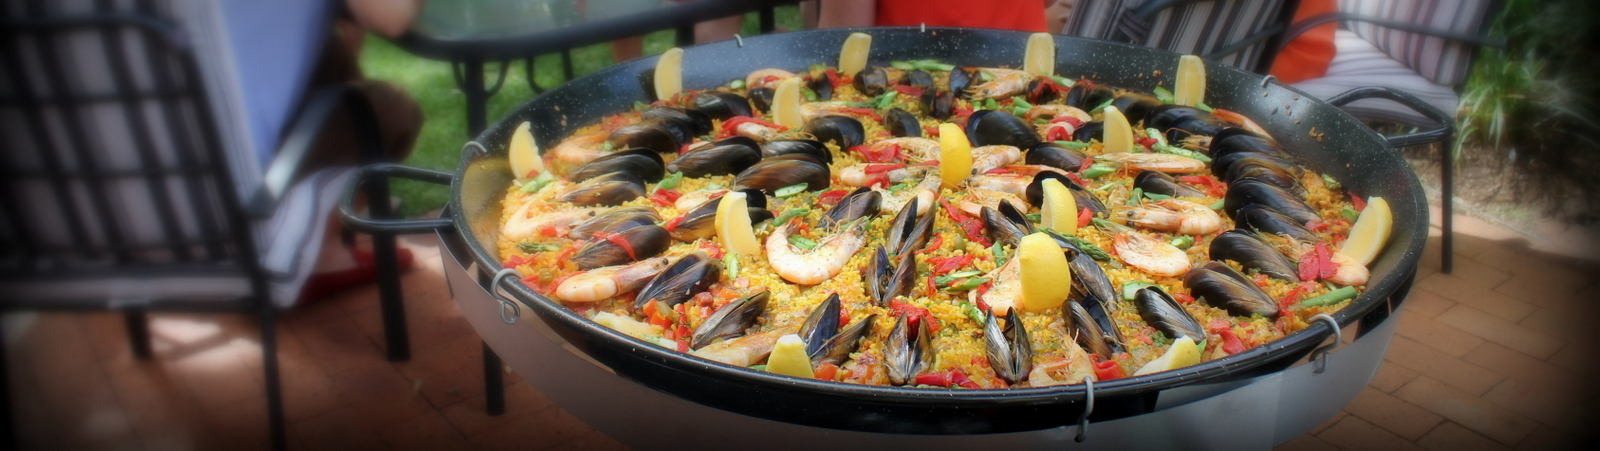 Paella Food Fiesta!